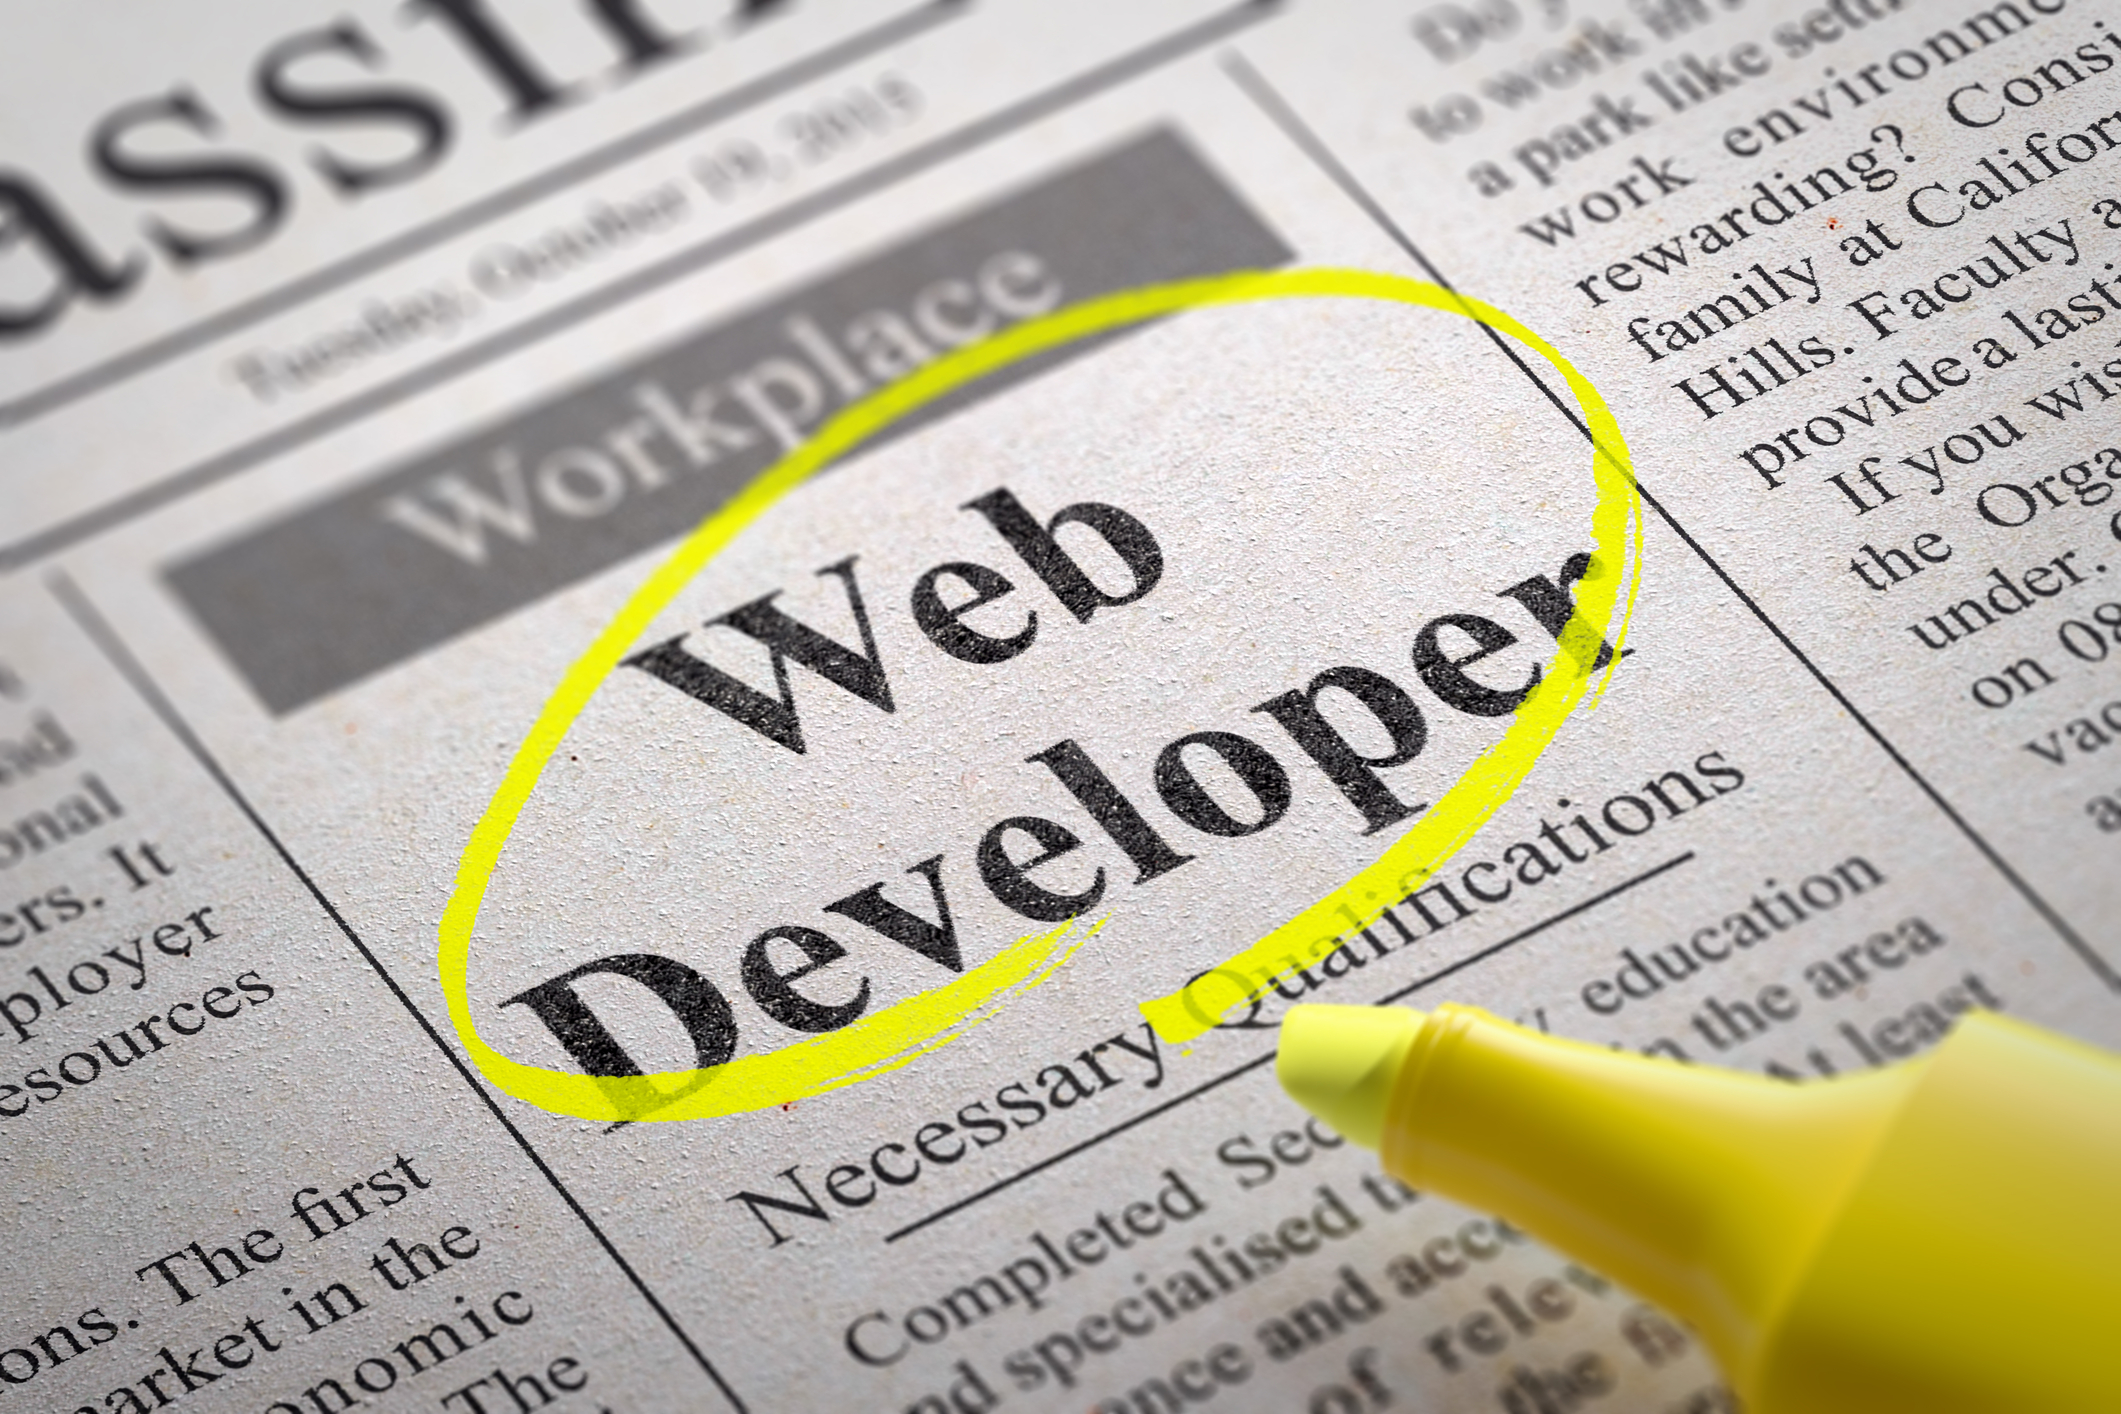 Newspaper Add Job listing for Web Developer Highlighted with Yellow Highlighter Job as a Web Developer